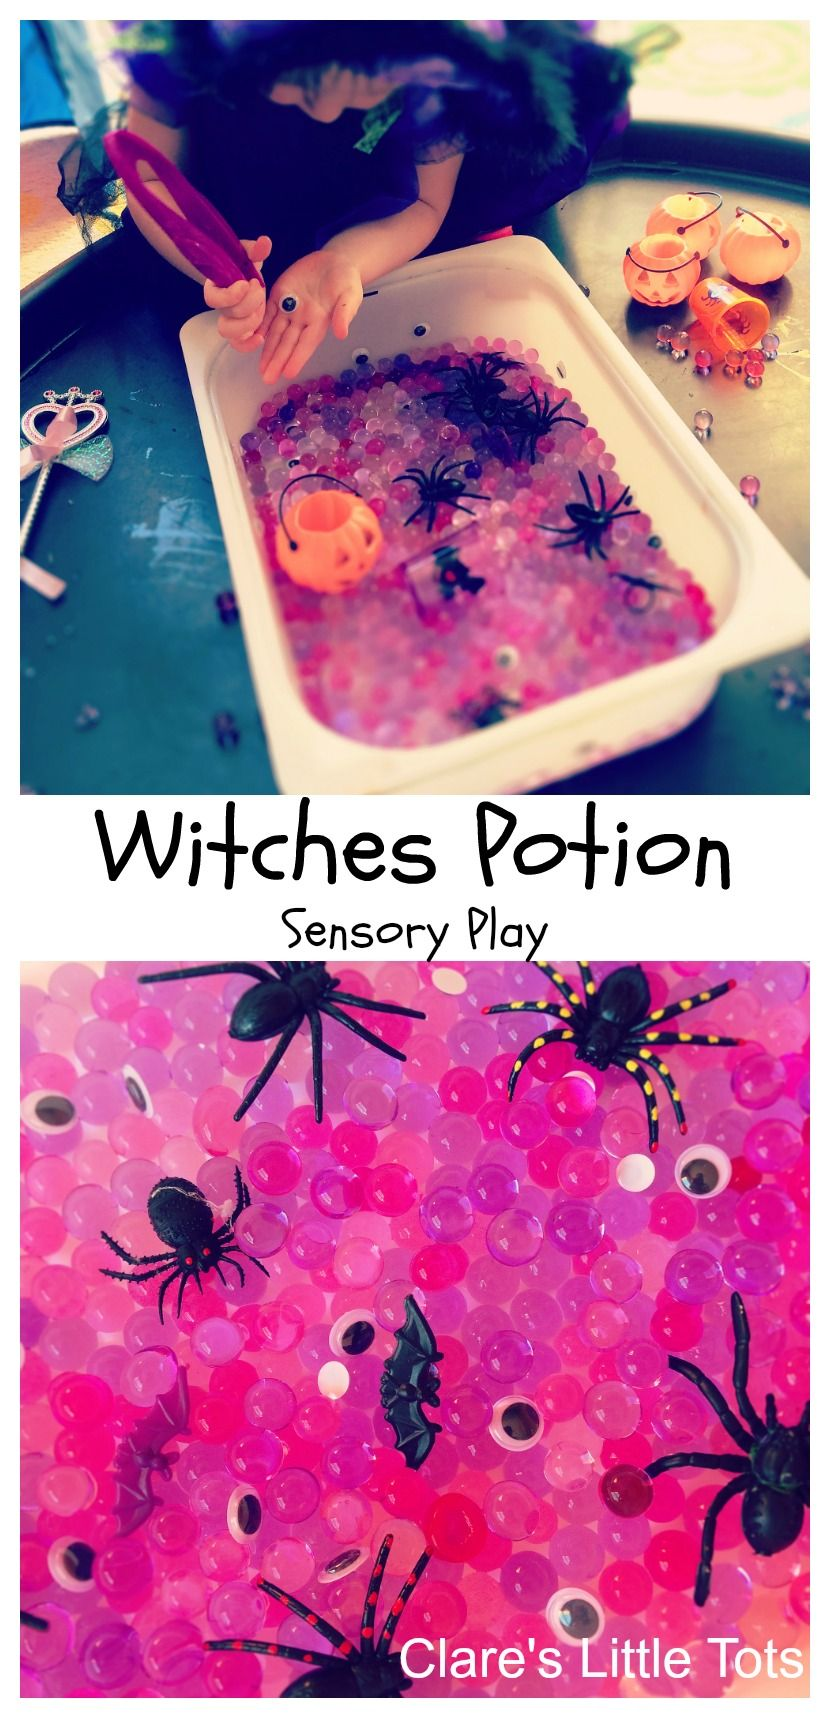 witches potion sensory play sensory play witches and plays